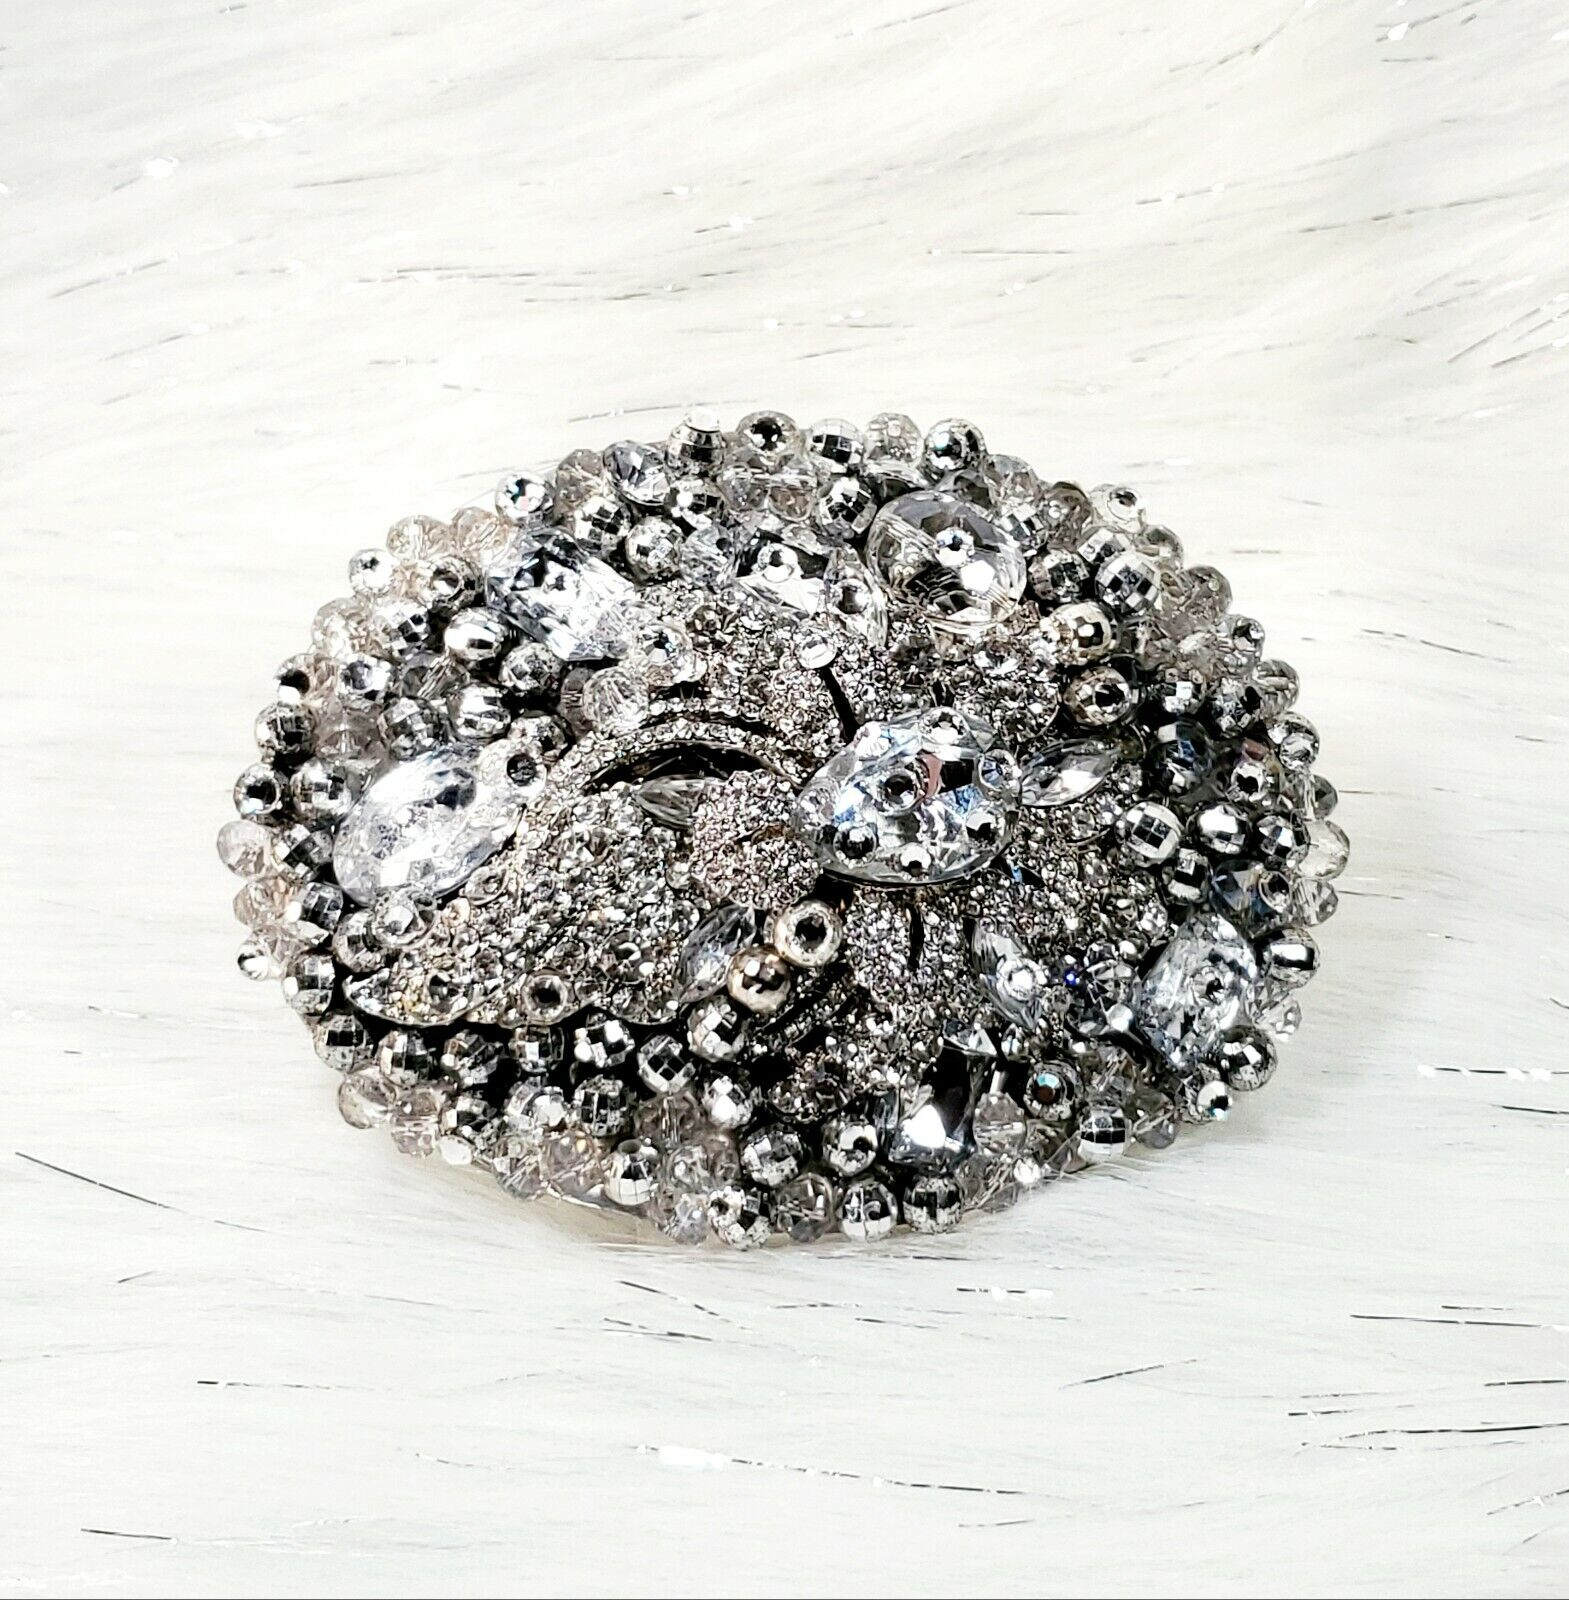 Embellished Stunning Bling Buckle jewels & Swk Crystals.Statement Buckle!!!